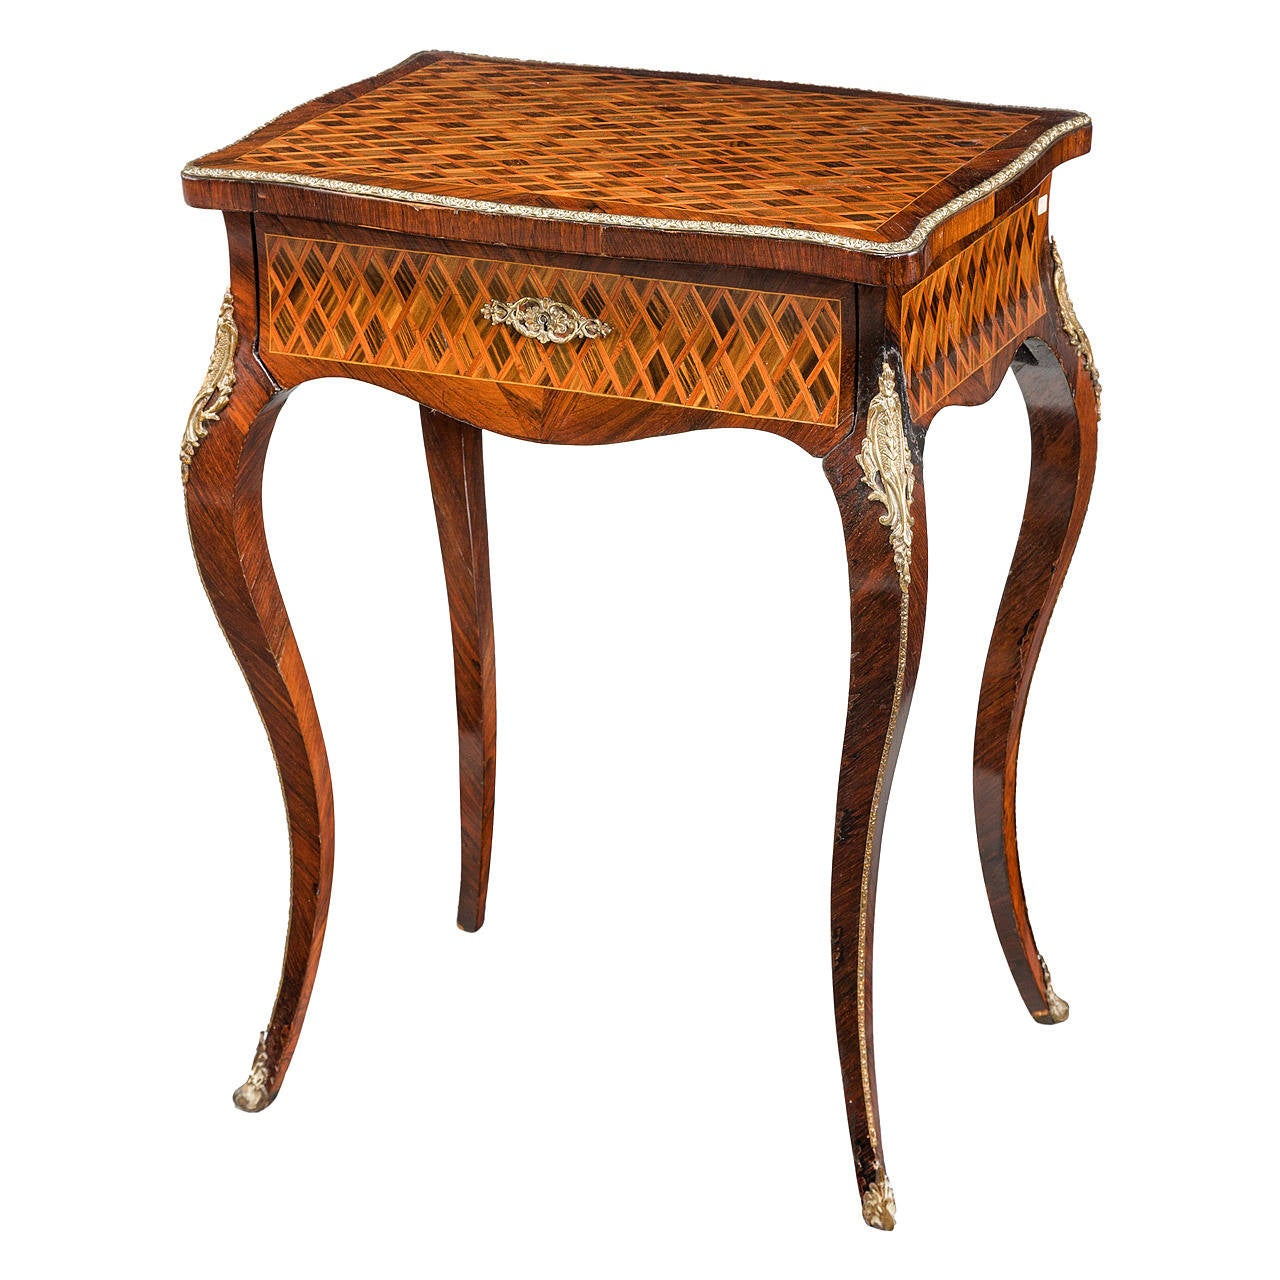 Kingwood parquetry ladies work table at 1stdibs for Furniture work table